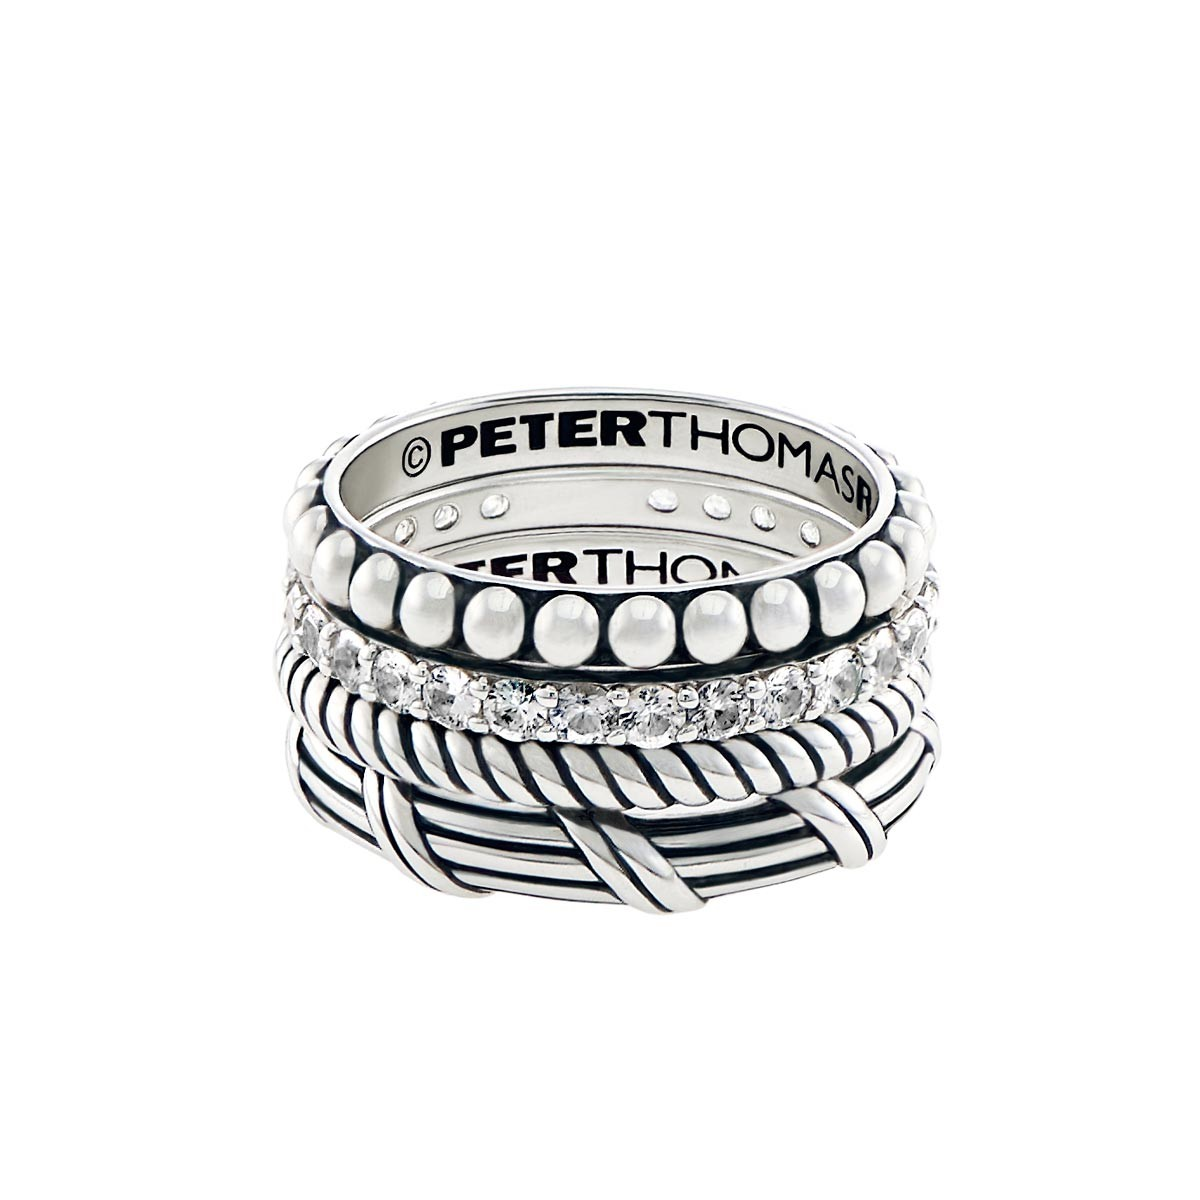 Signature Classic Stack Ring Set with white topaz in sterling silver